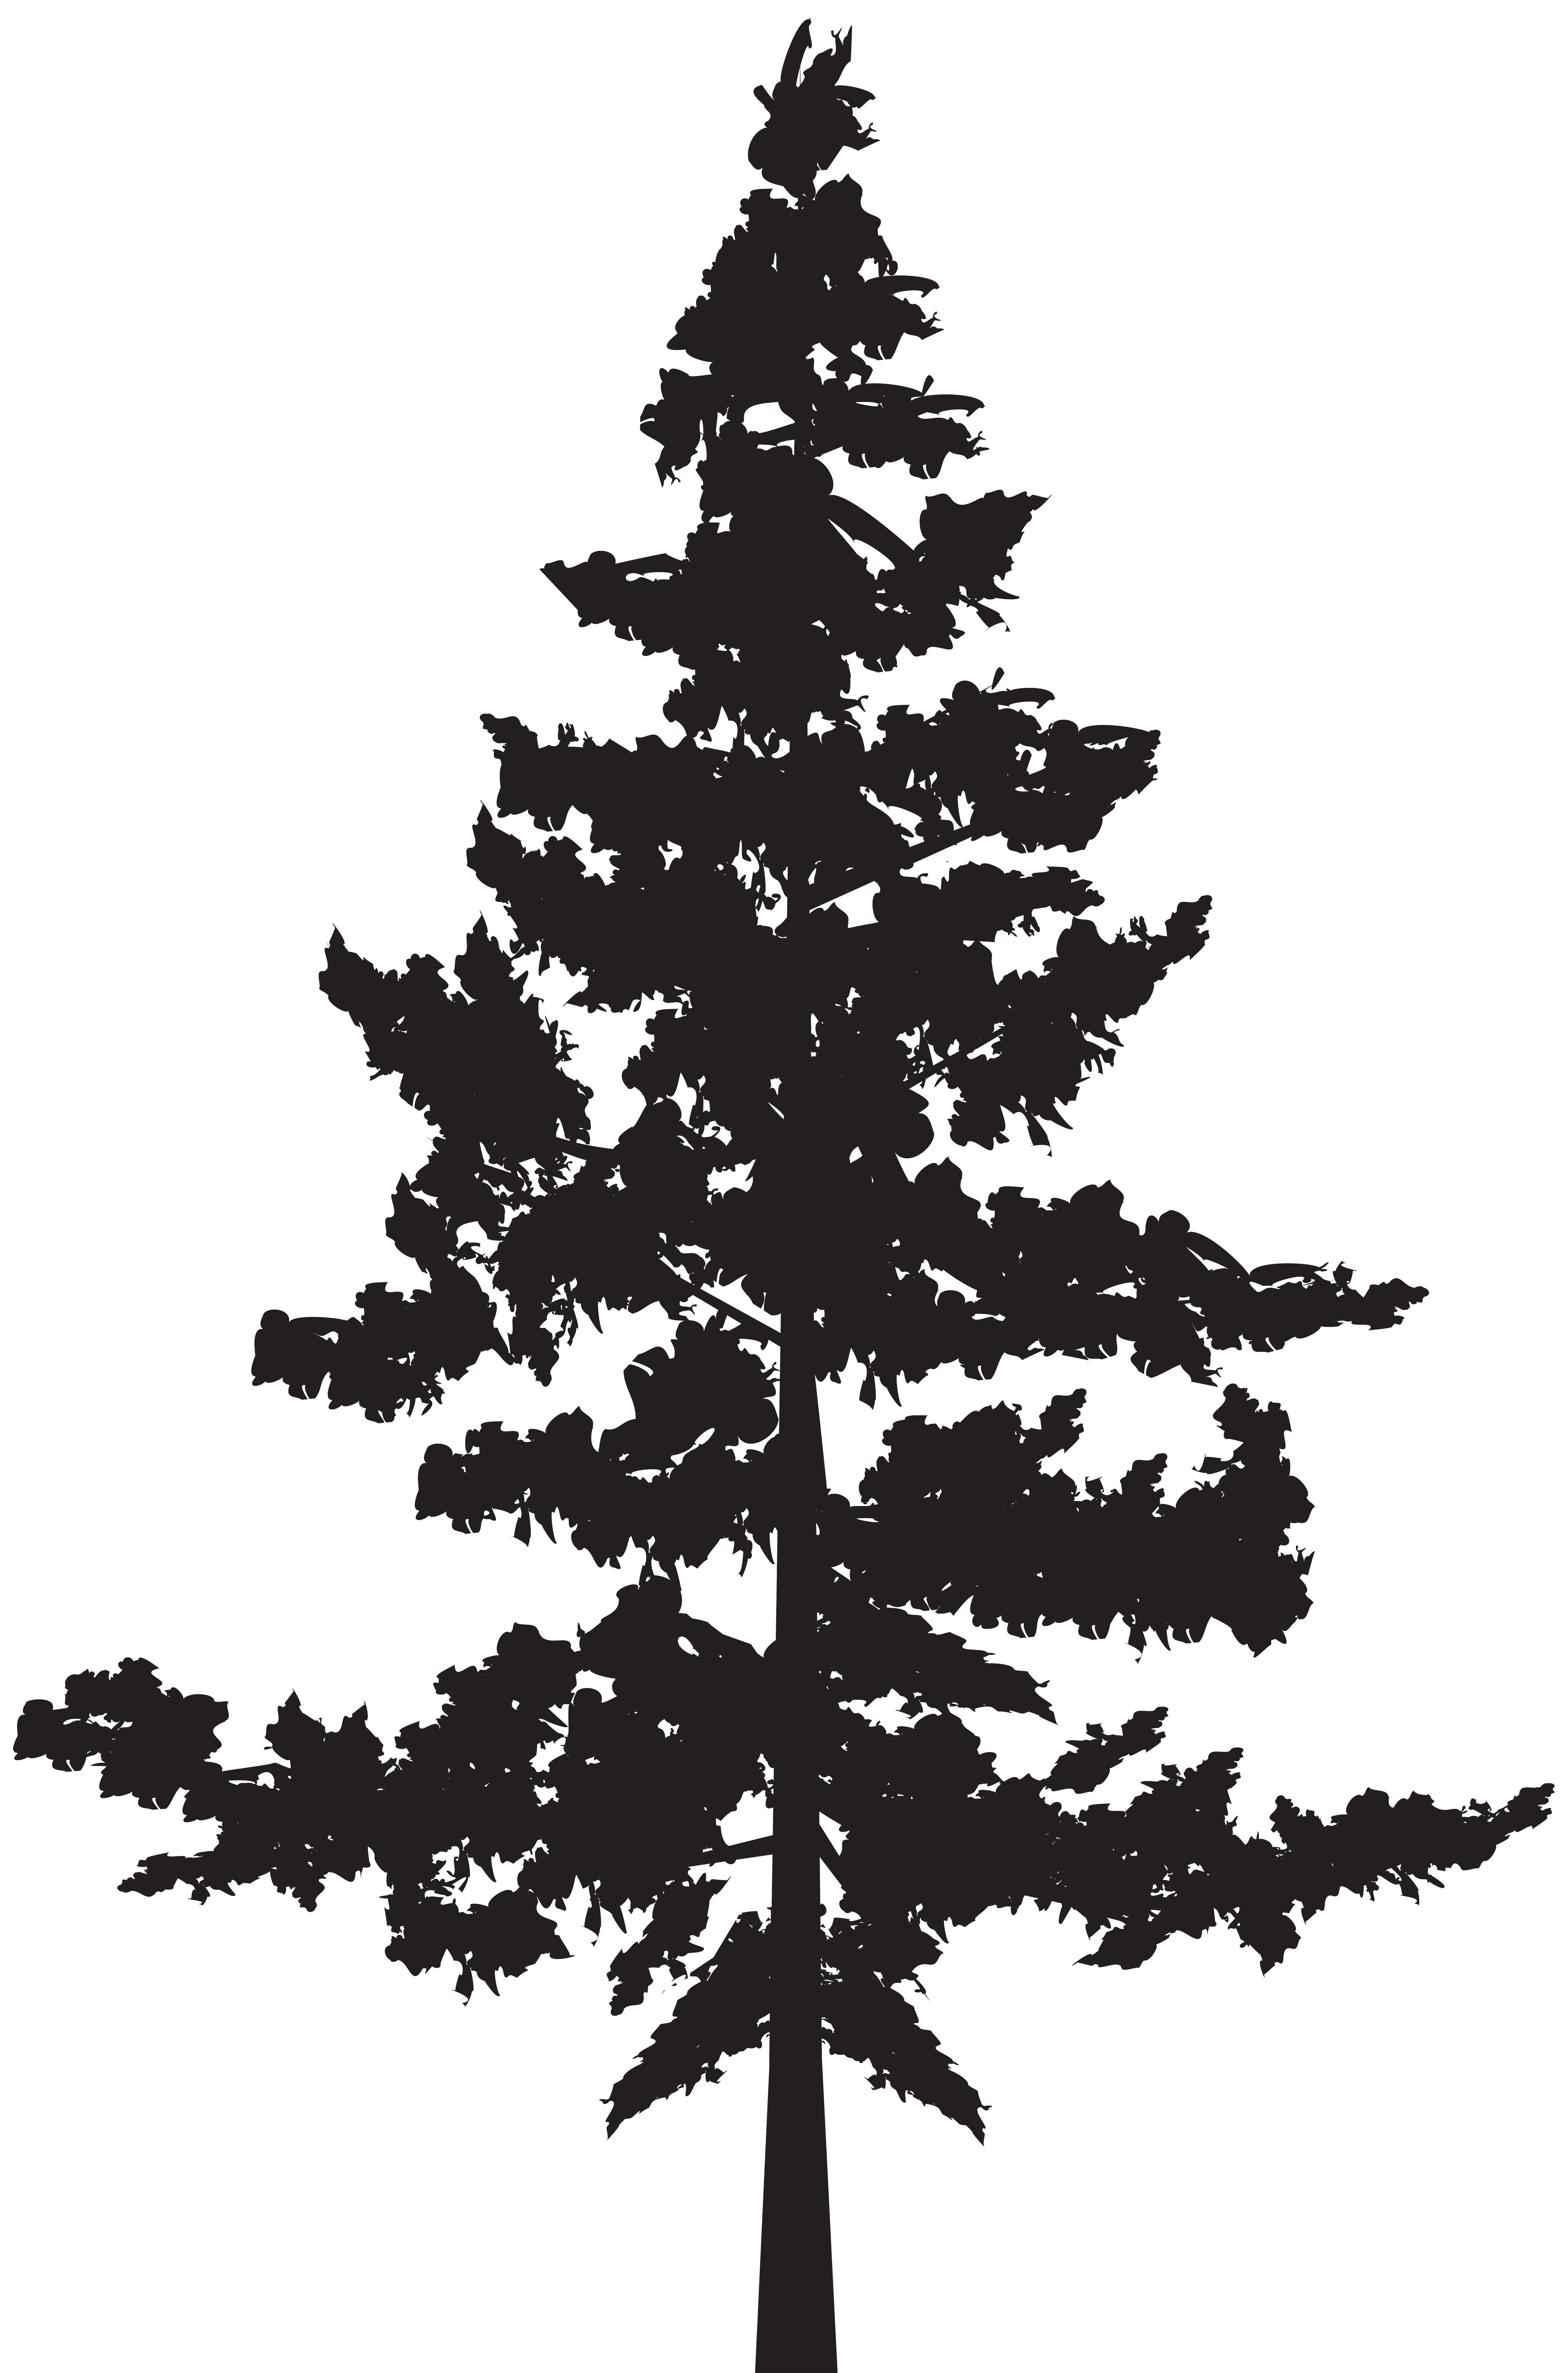 Red pine tree clipart image royalty free library Tree PNG Silhouette Clip Art Image | Gallery Yopriceville - High ... image royalty free library